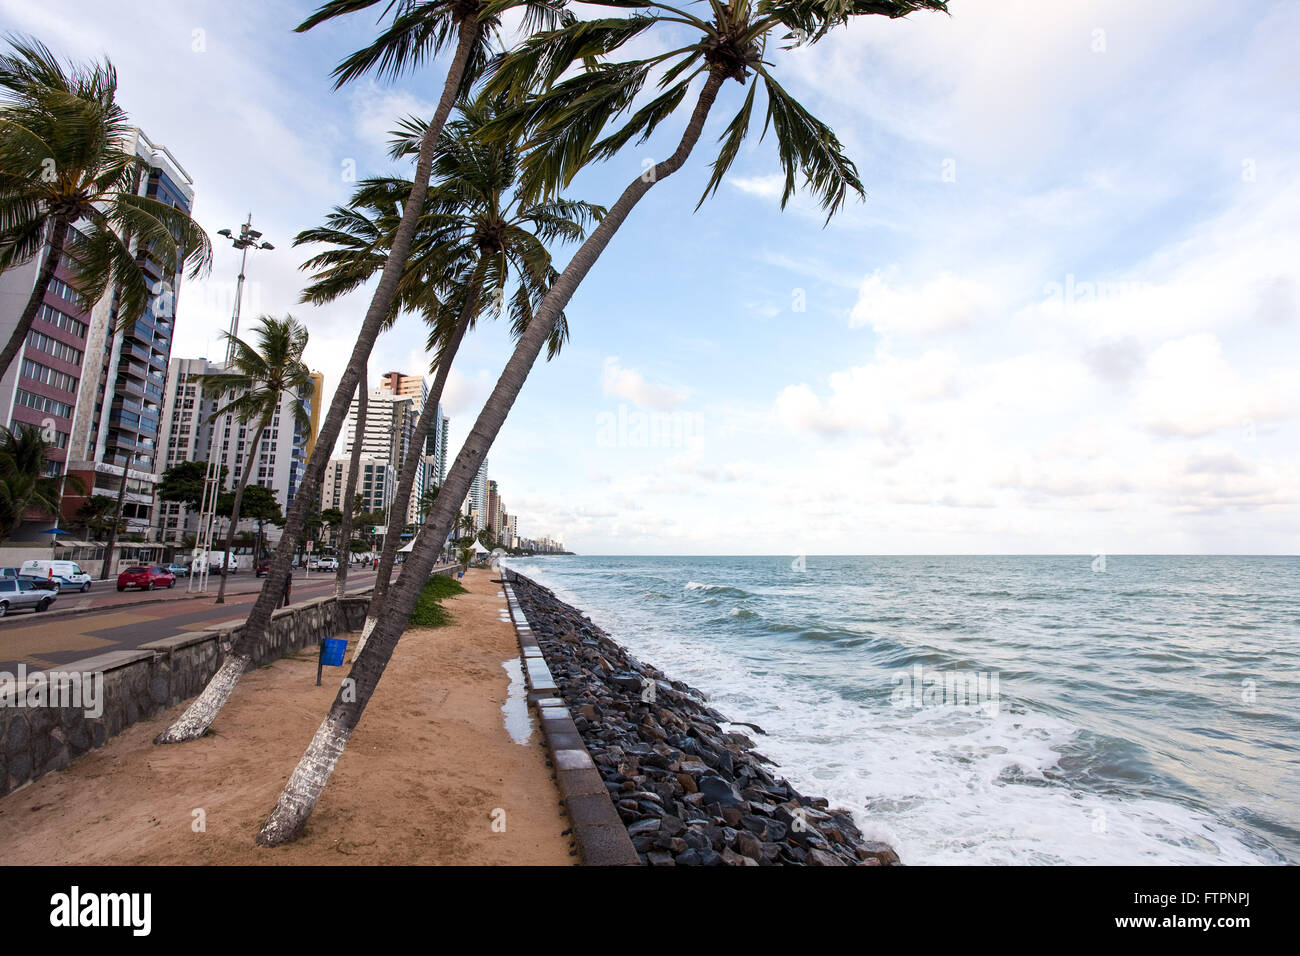 Palm tilted by the action of the wind on the edge of Praia de Boa Viagem - Stock Image